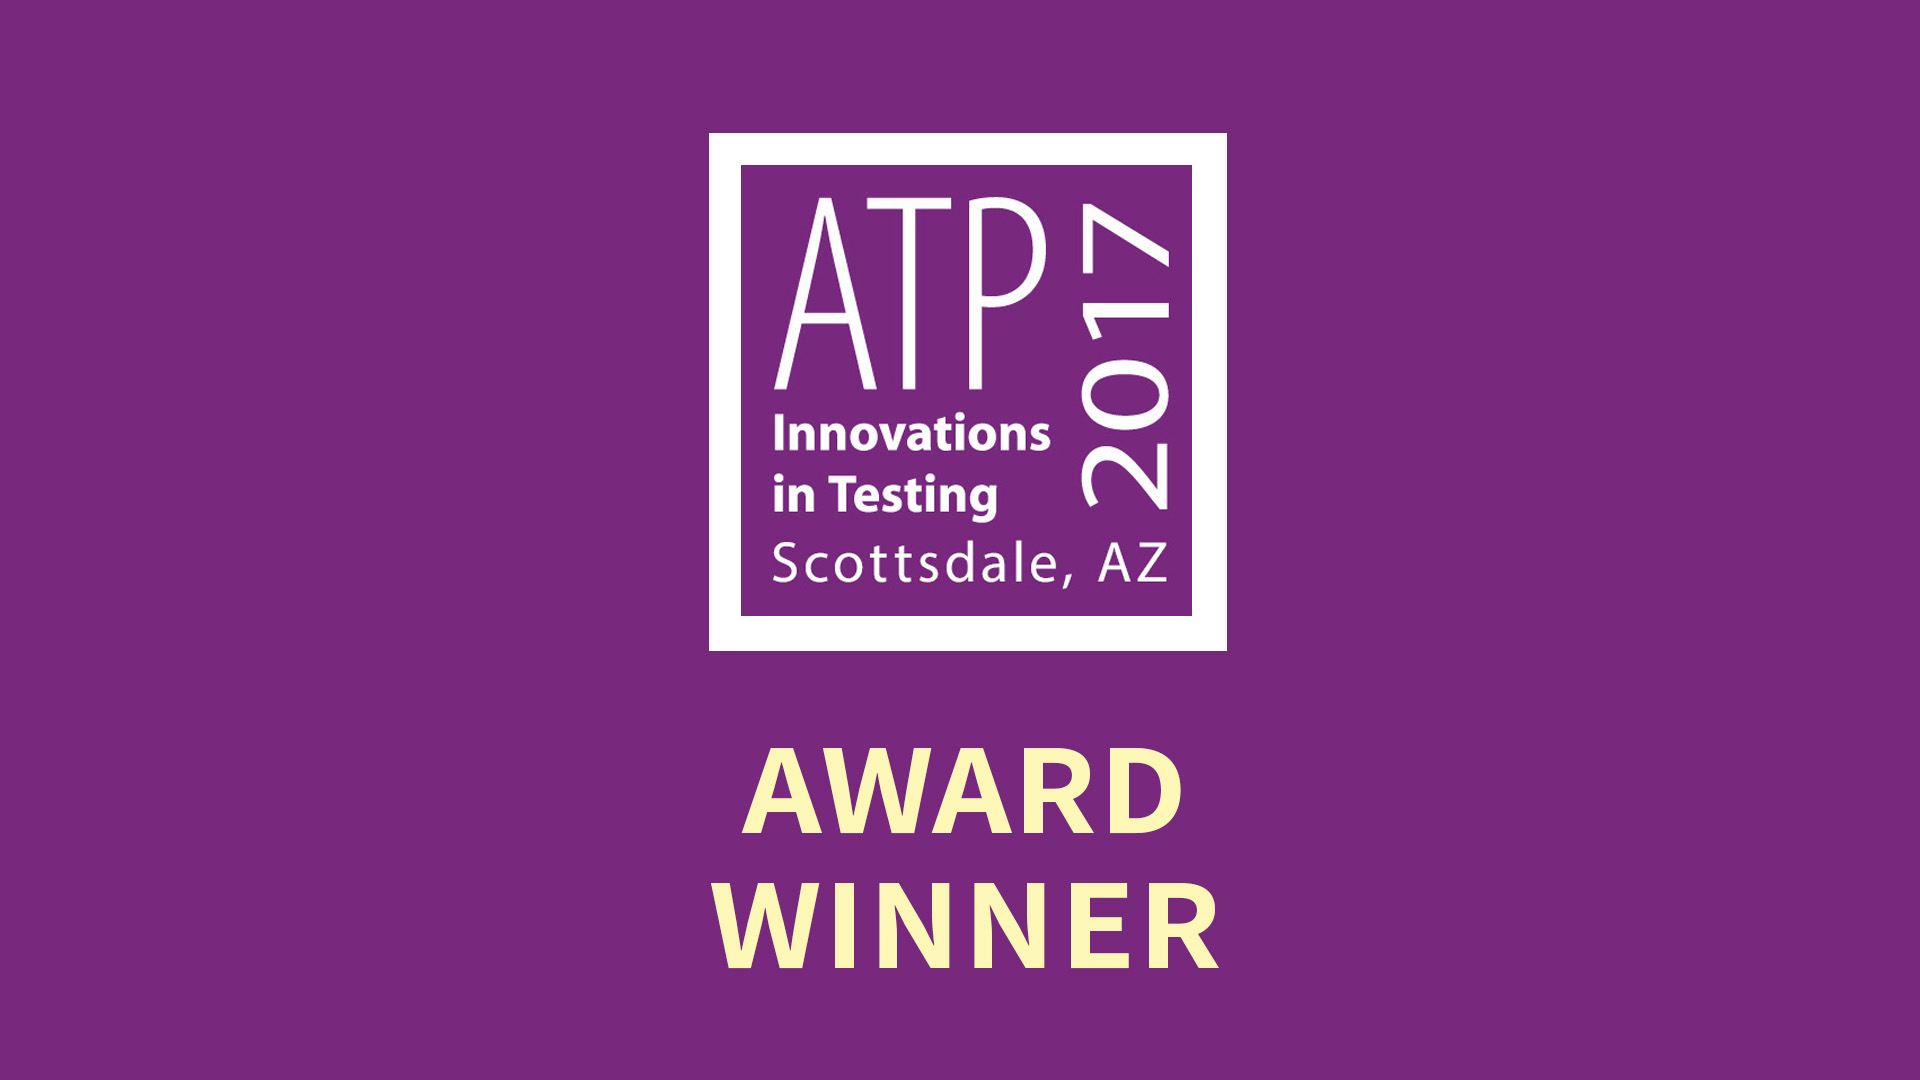 ATP 2017 Innovations in Testing - Award Winner Surpass